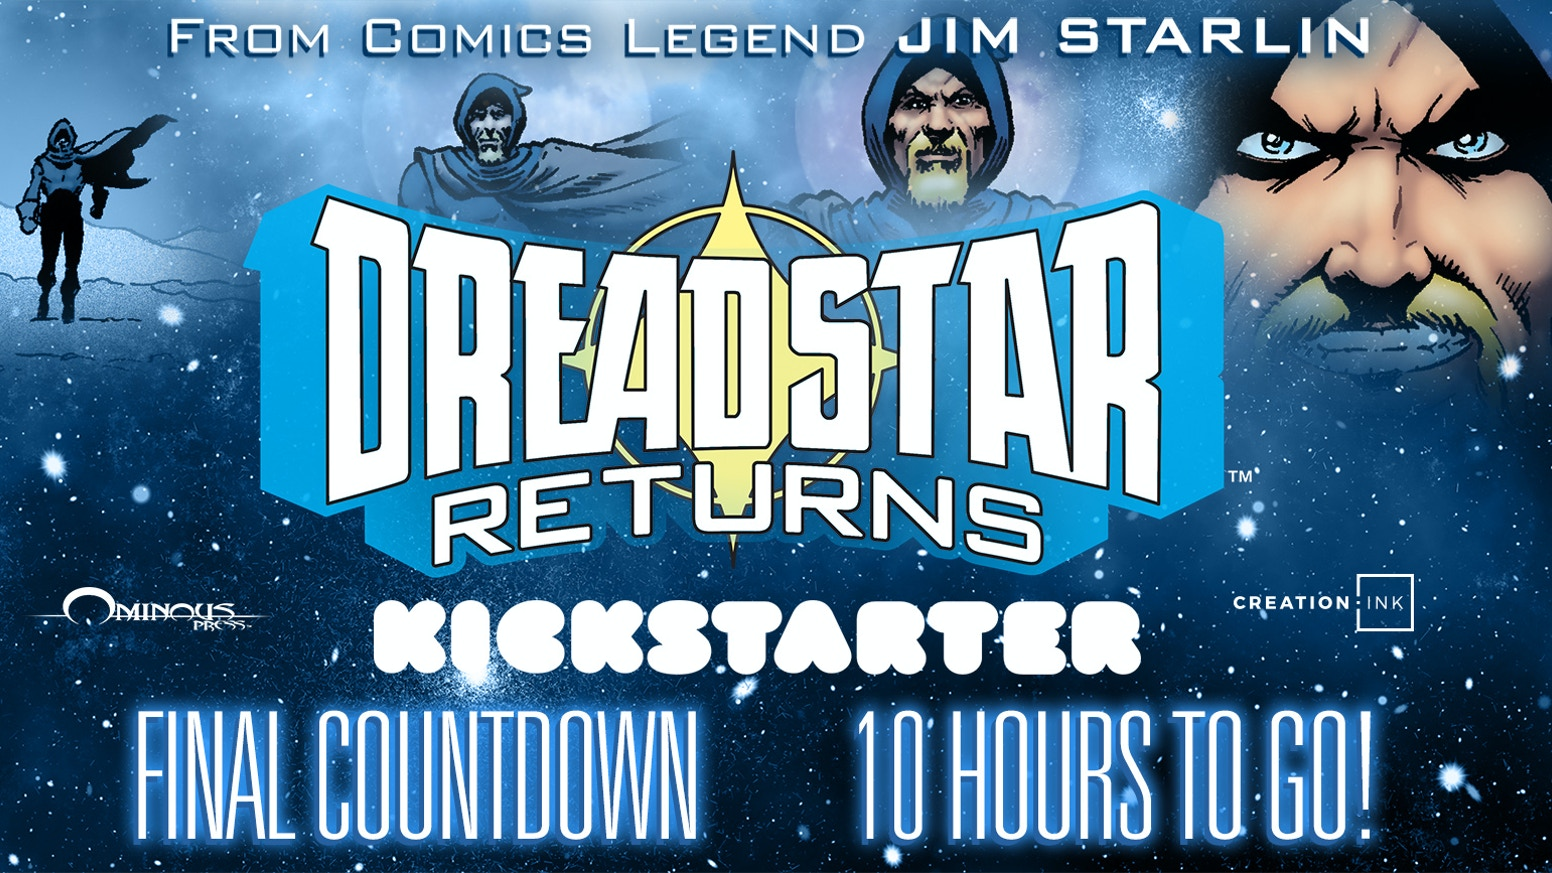 Vanth Dreadstar returns in an ALL NEW, 100-page adventure by series creator and legendary comic book writer/illustrator Jim Starlin.